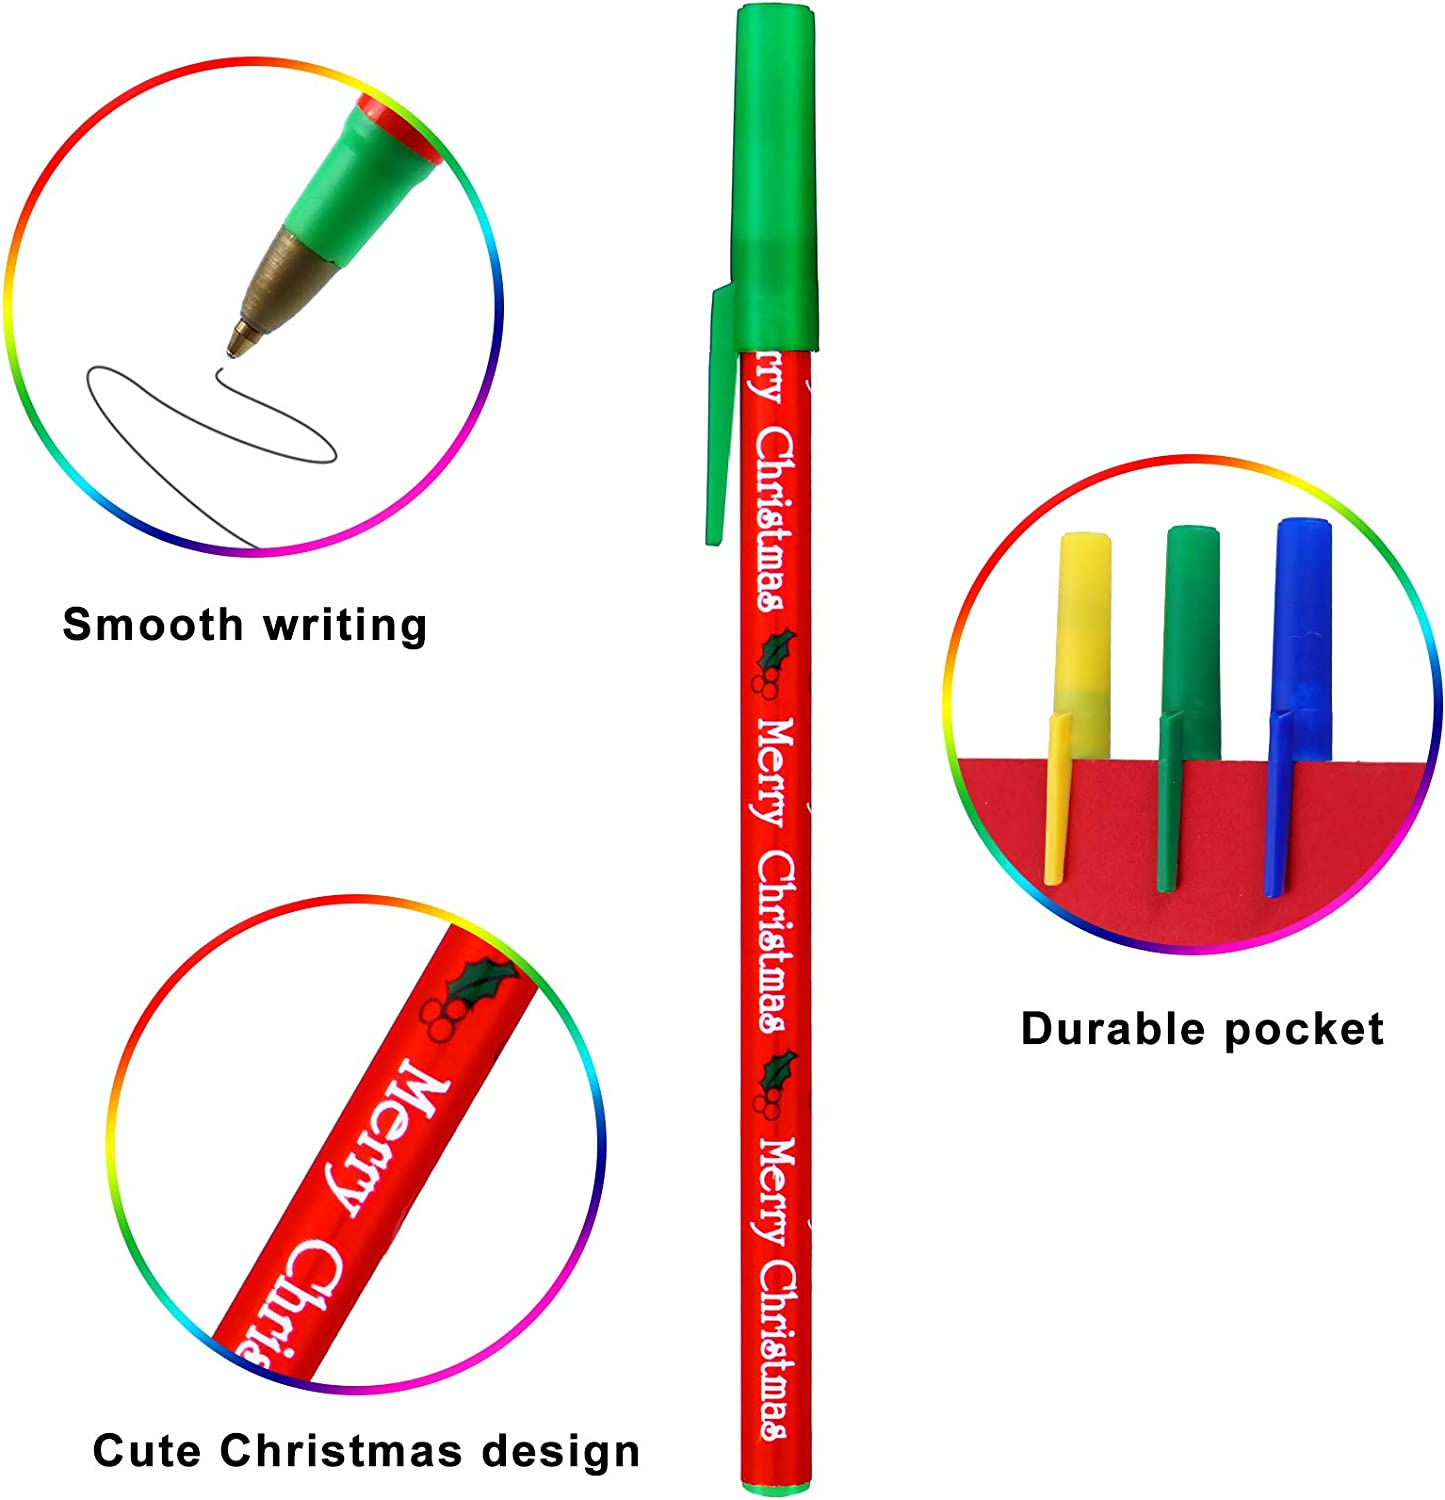 Stationery & Office Supplies Pens, Pencils & Writing Supplies 48 ...